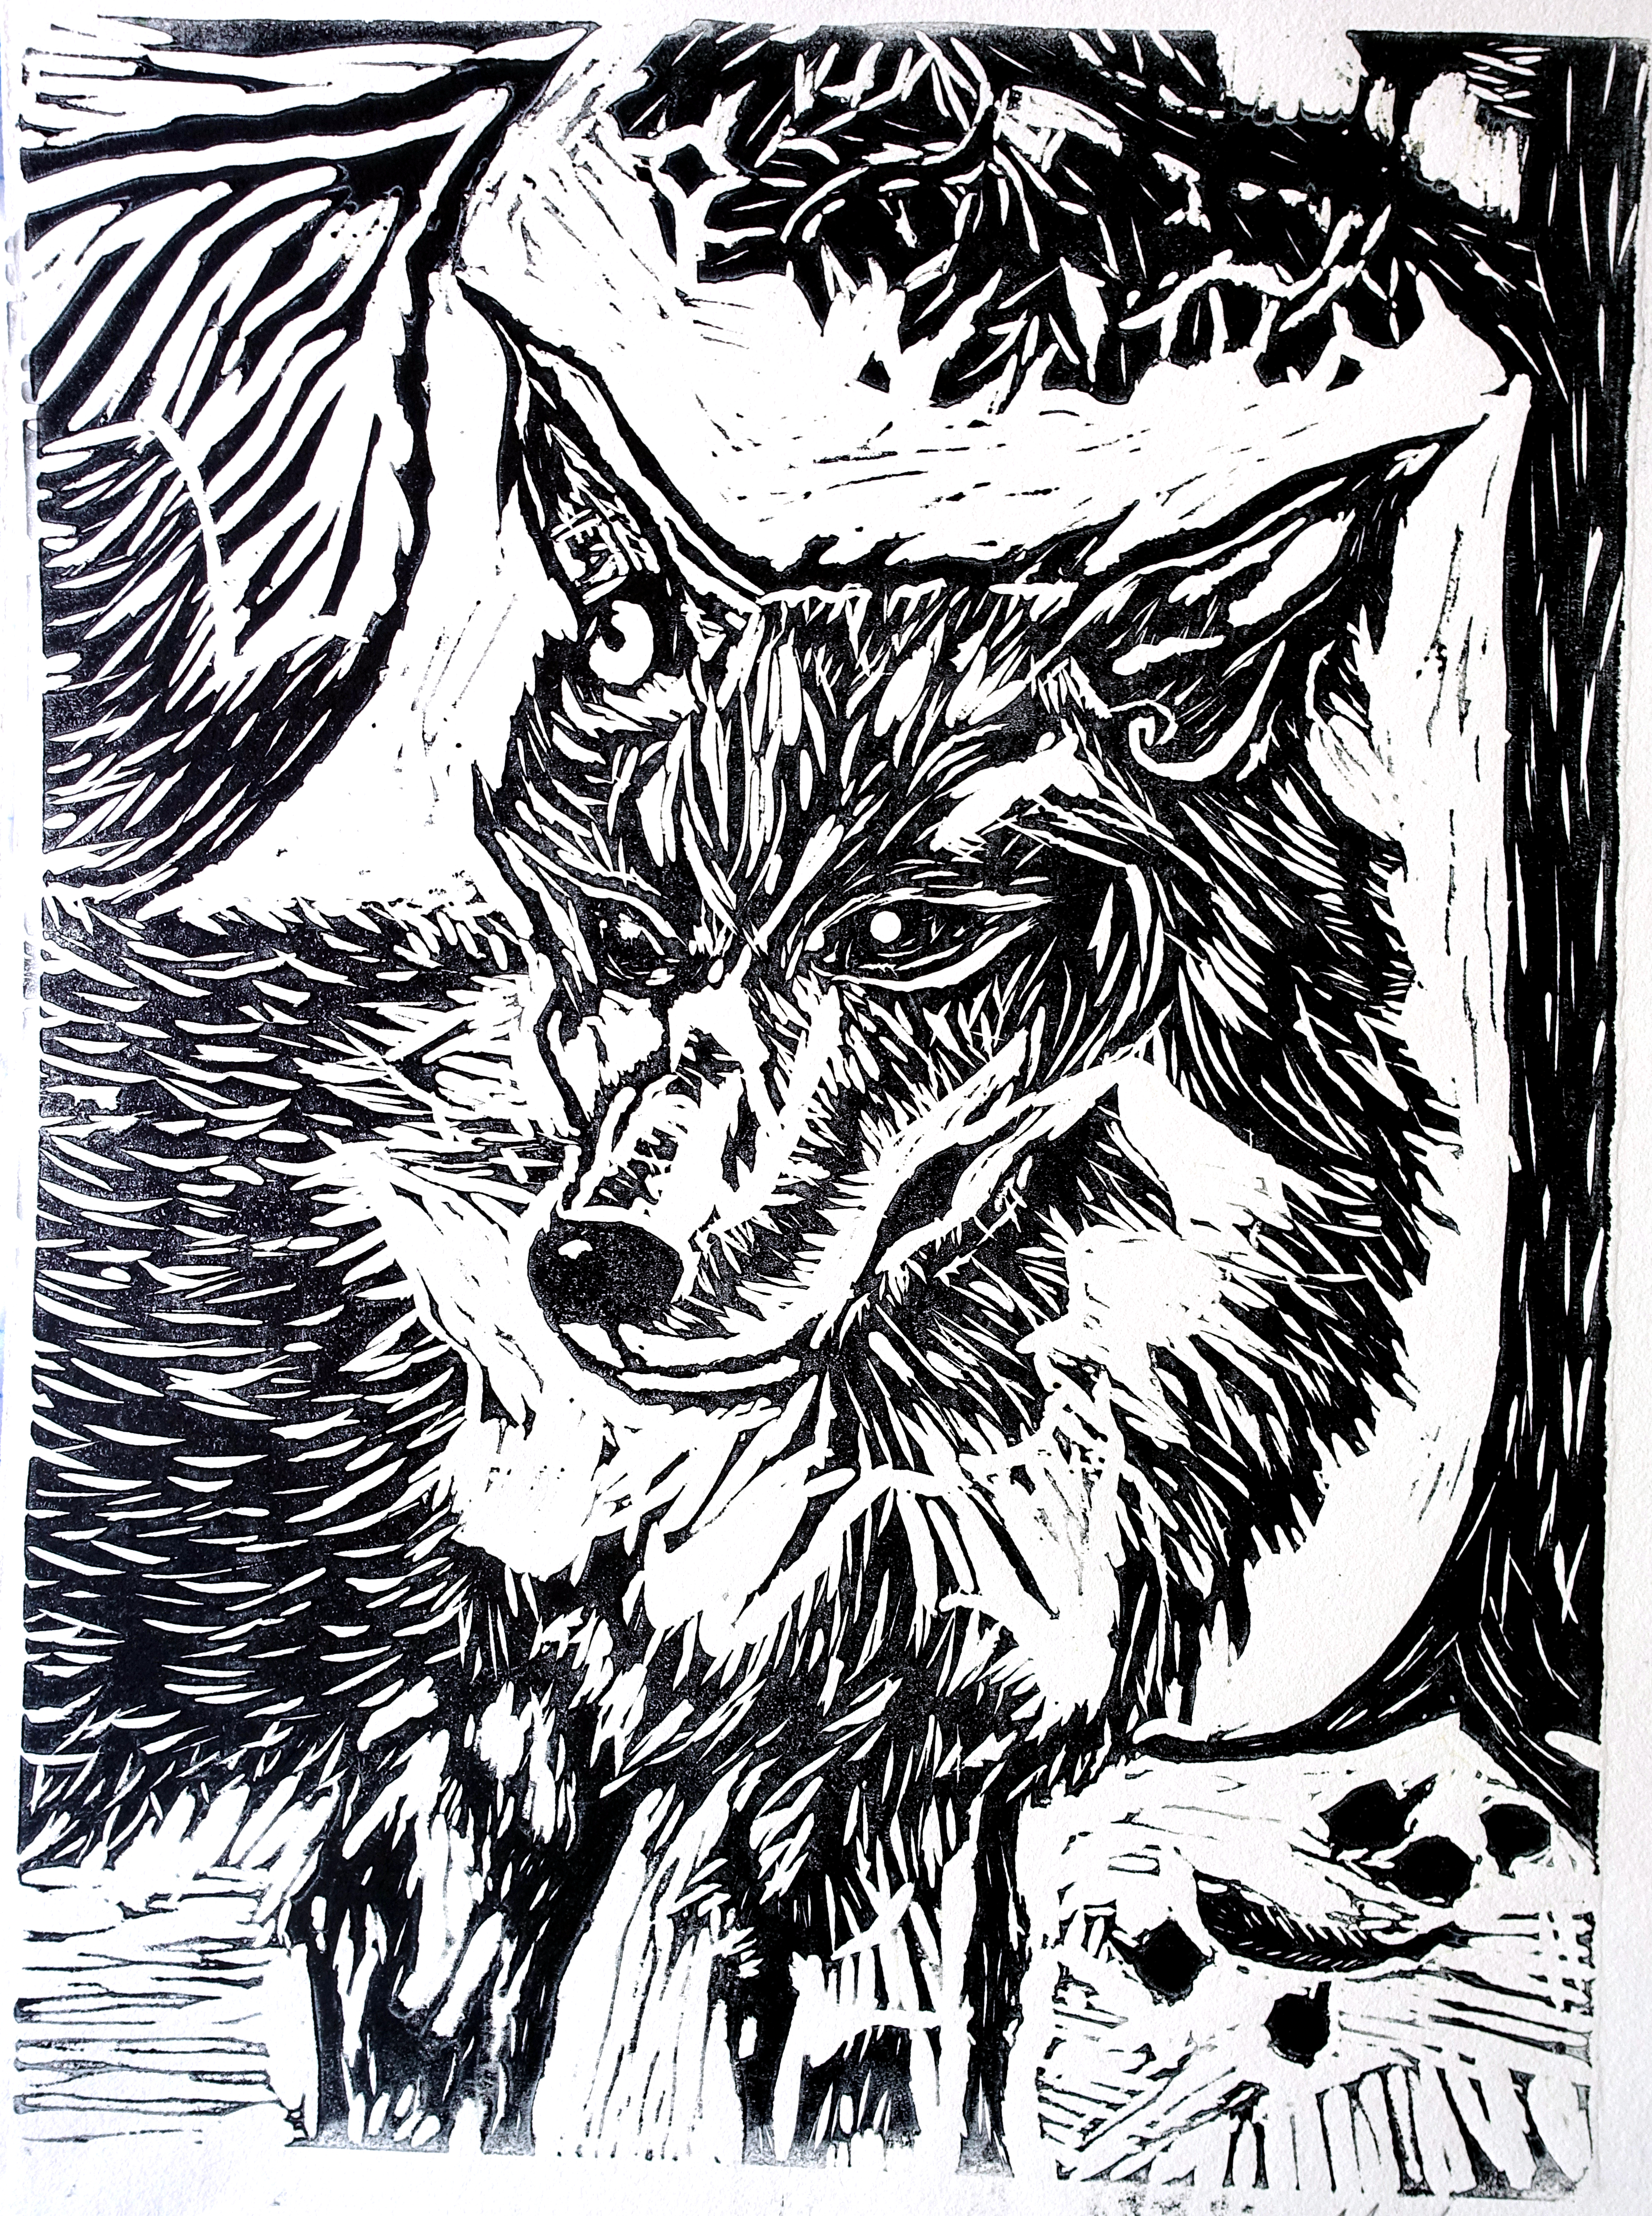 View Image Details PORTRAIT OF WOLF  linocut 12 x 9 inches